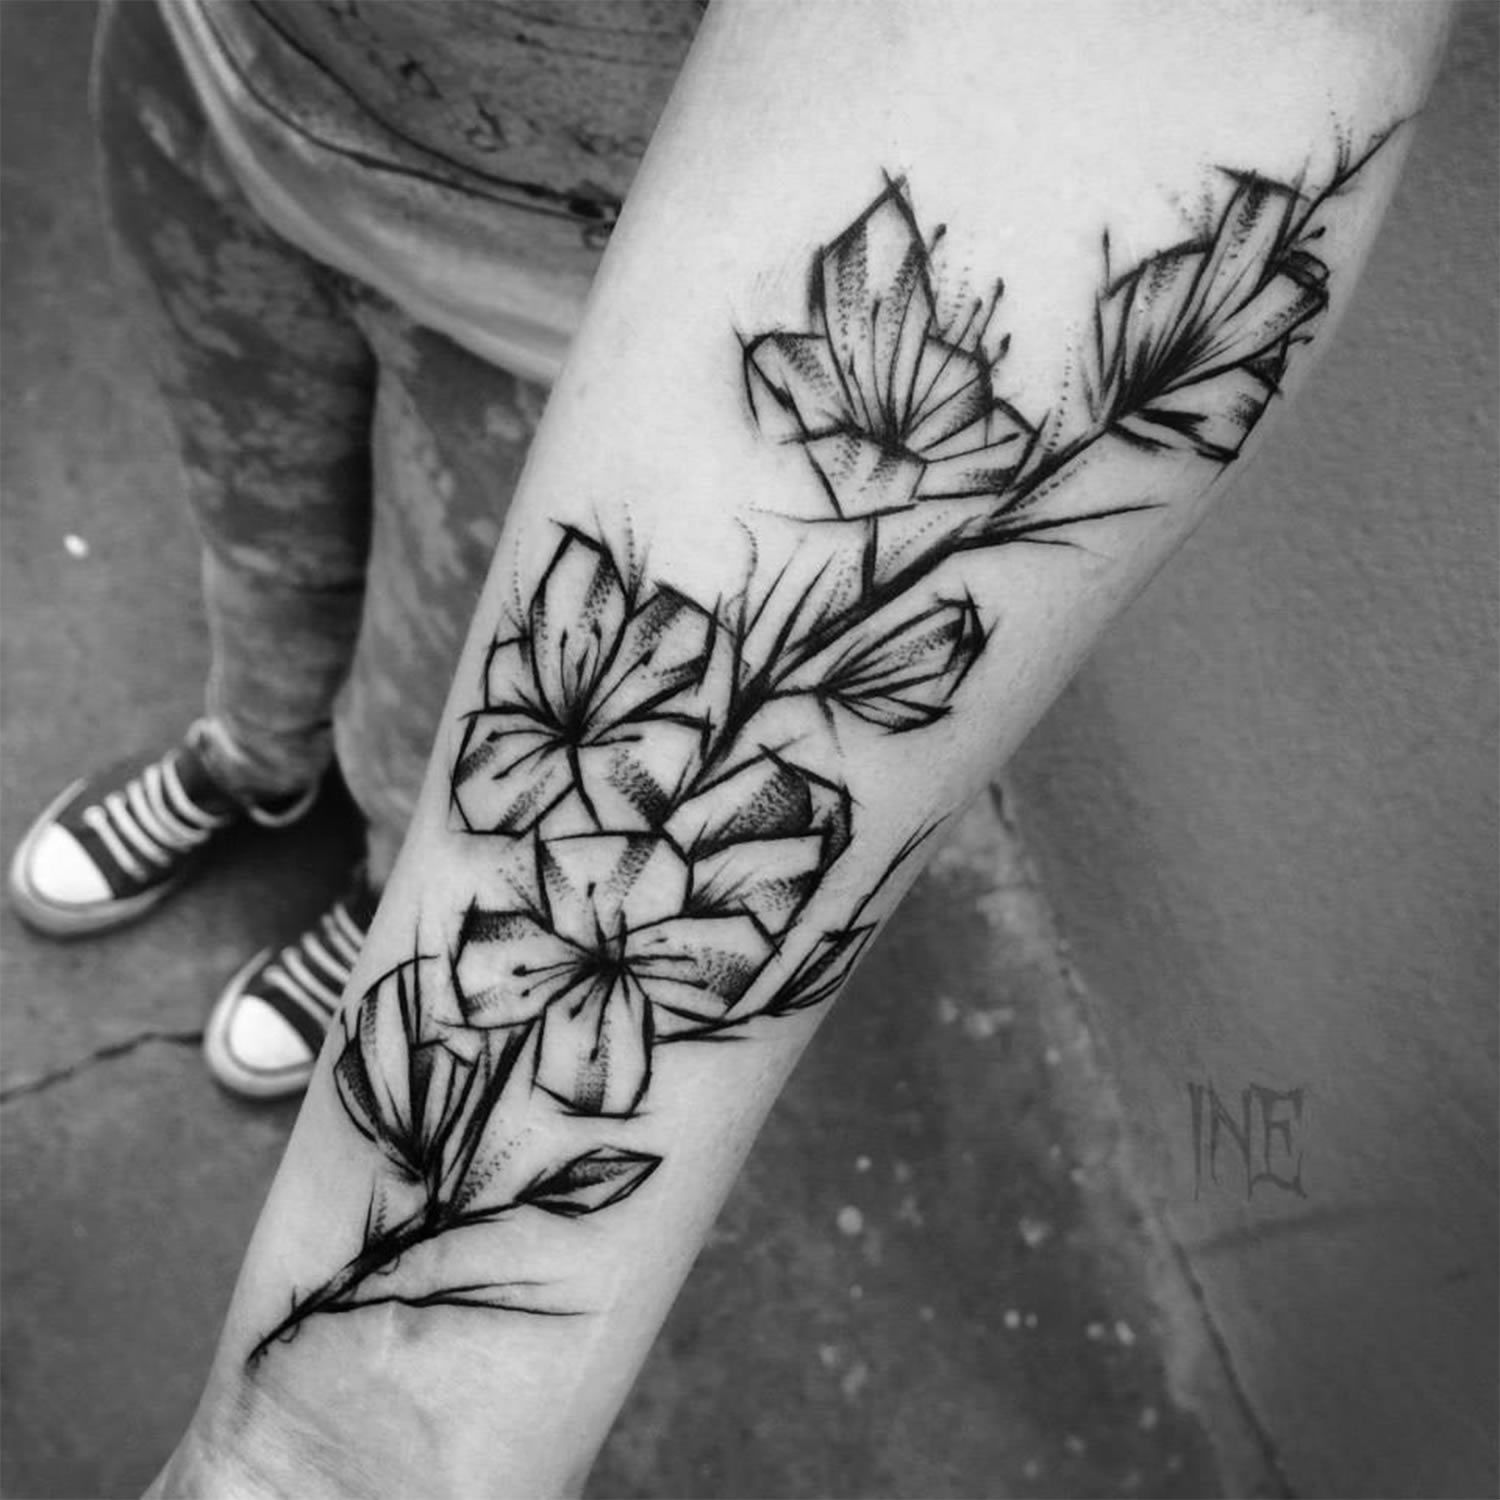 15 Remarkable BlackInk Tattoos Abstract flower tattoos